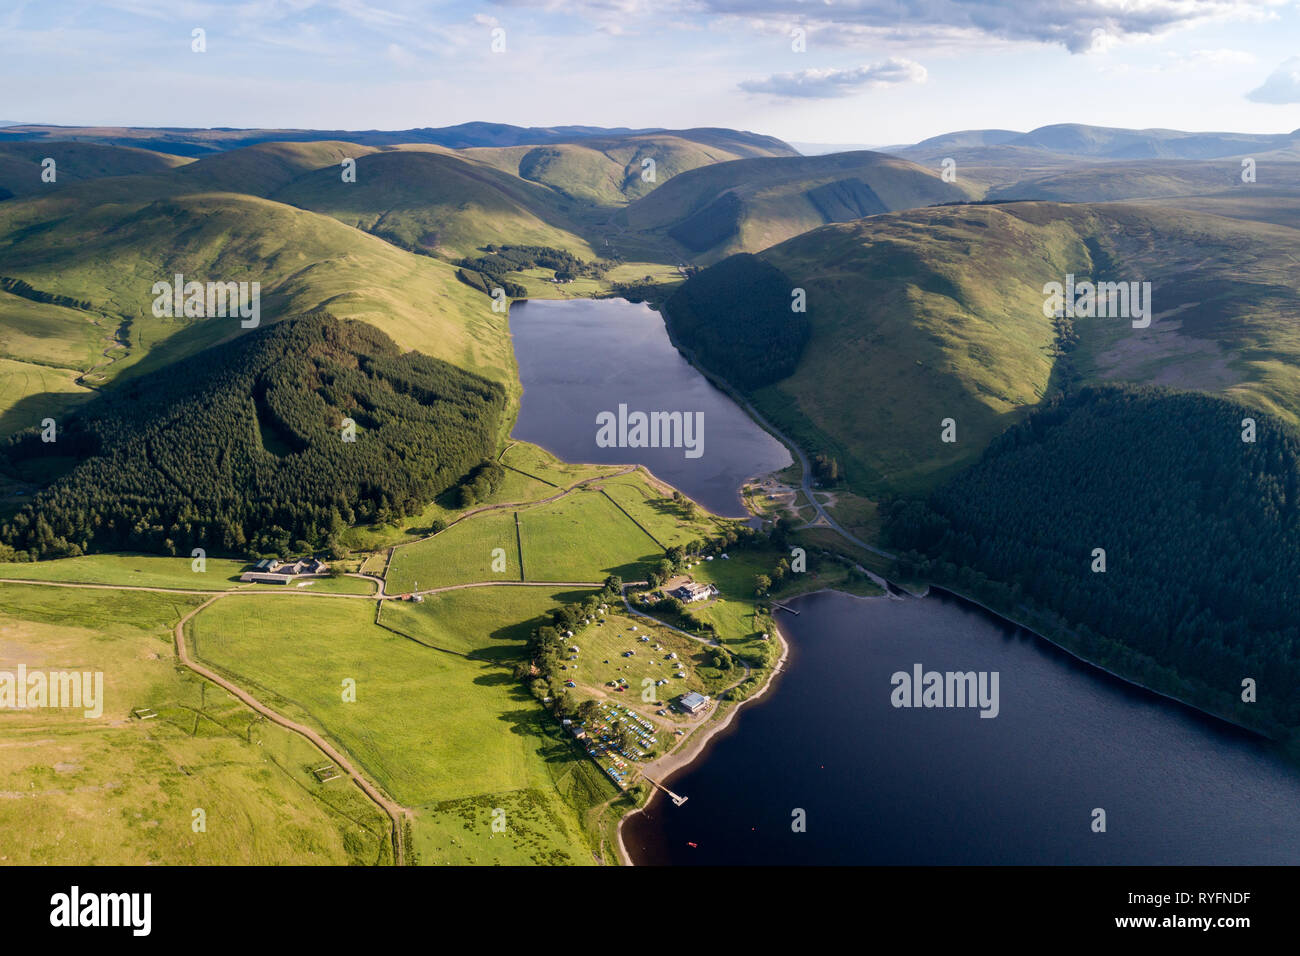 Aerial image of St Mary's Loch and Loch of the Lowes showing surrounding hills from a high vantage point. - Stock Image